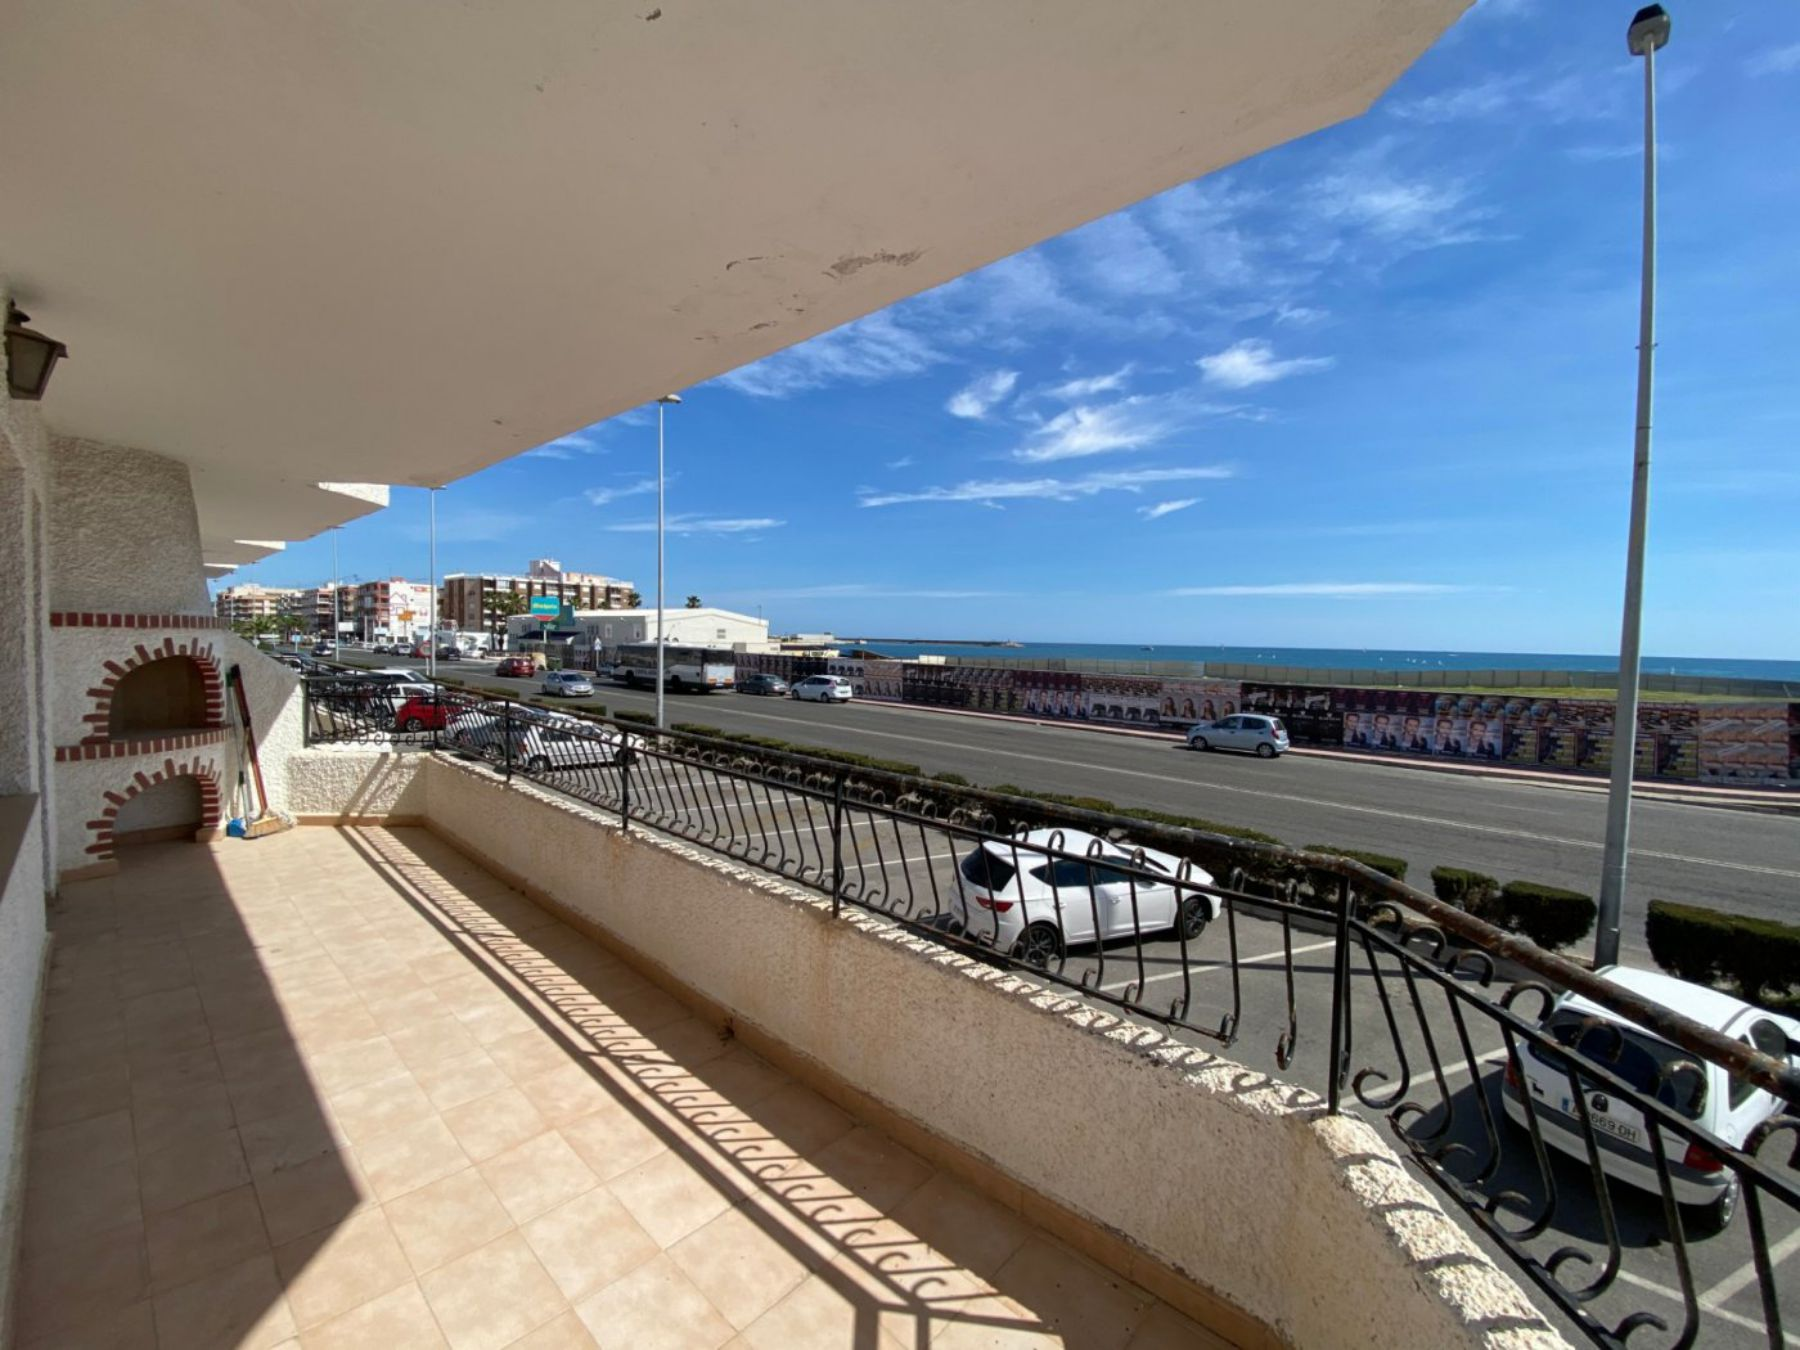 3 Bedrooms Apartment For Sale with Frontal Sea Views in Torrevieja